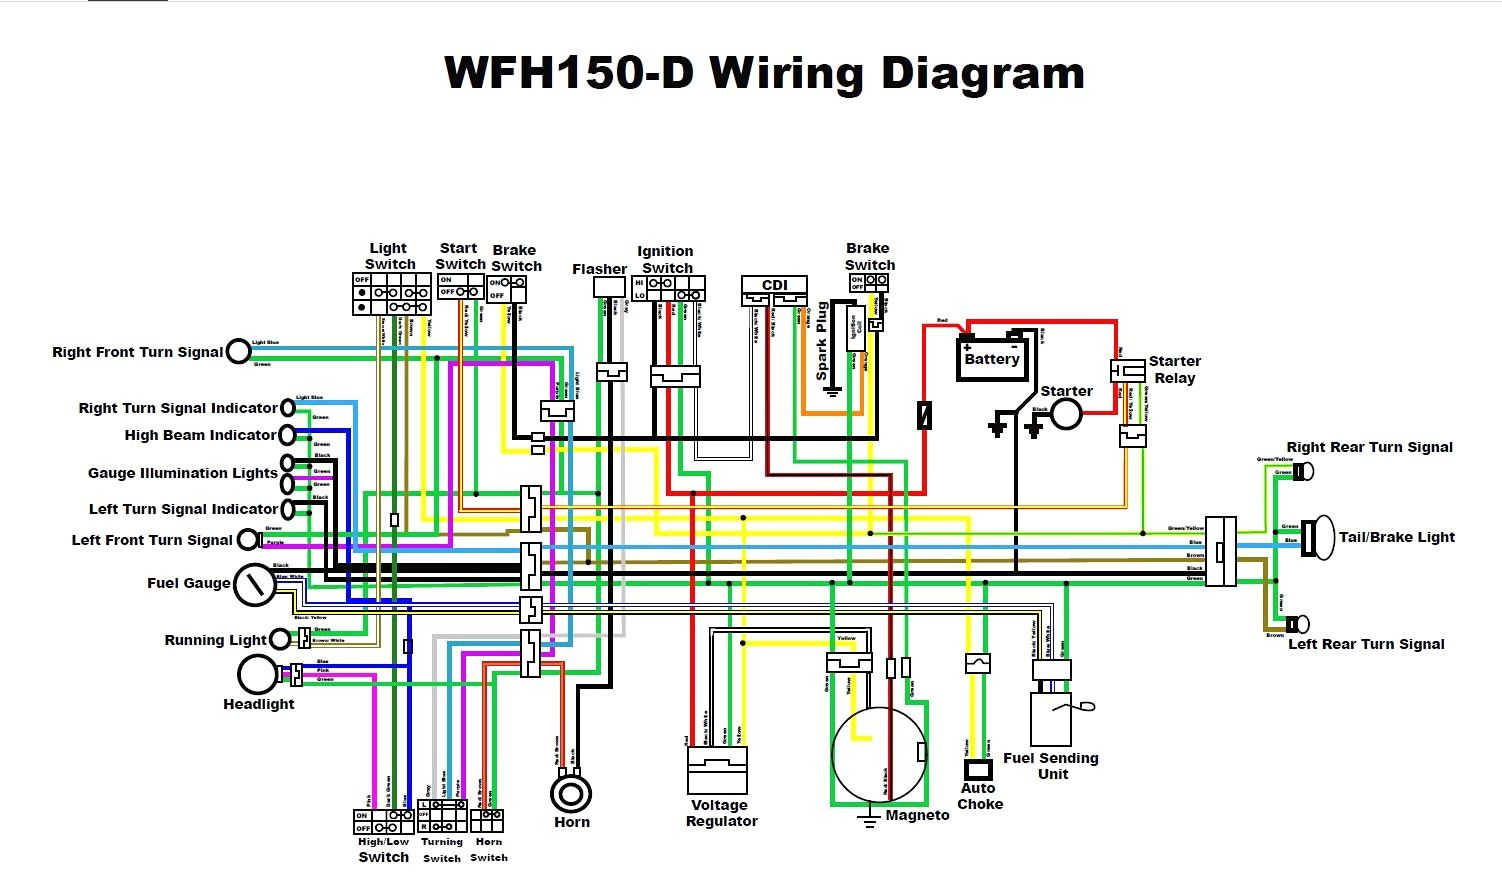 [DIAGRAM_5LK]  Gy6 150 Wiring Diagram Diagrams Schematics And 150Cc Hbphelp Me New | Electrical  diagram, 150cc go kart, 150cc scooter | 2013 Gy6 50cc Wiring Diagram |  | Pinterest